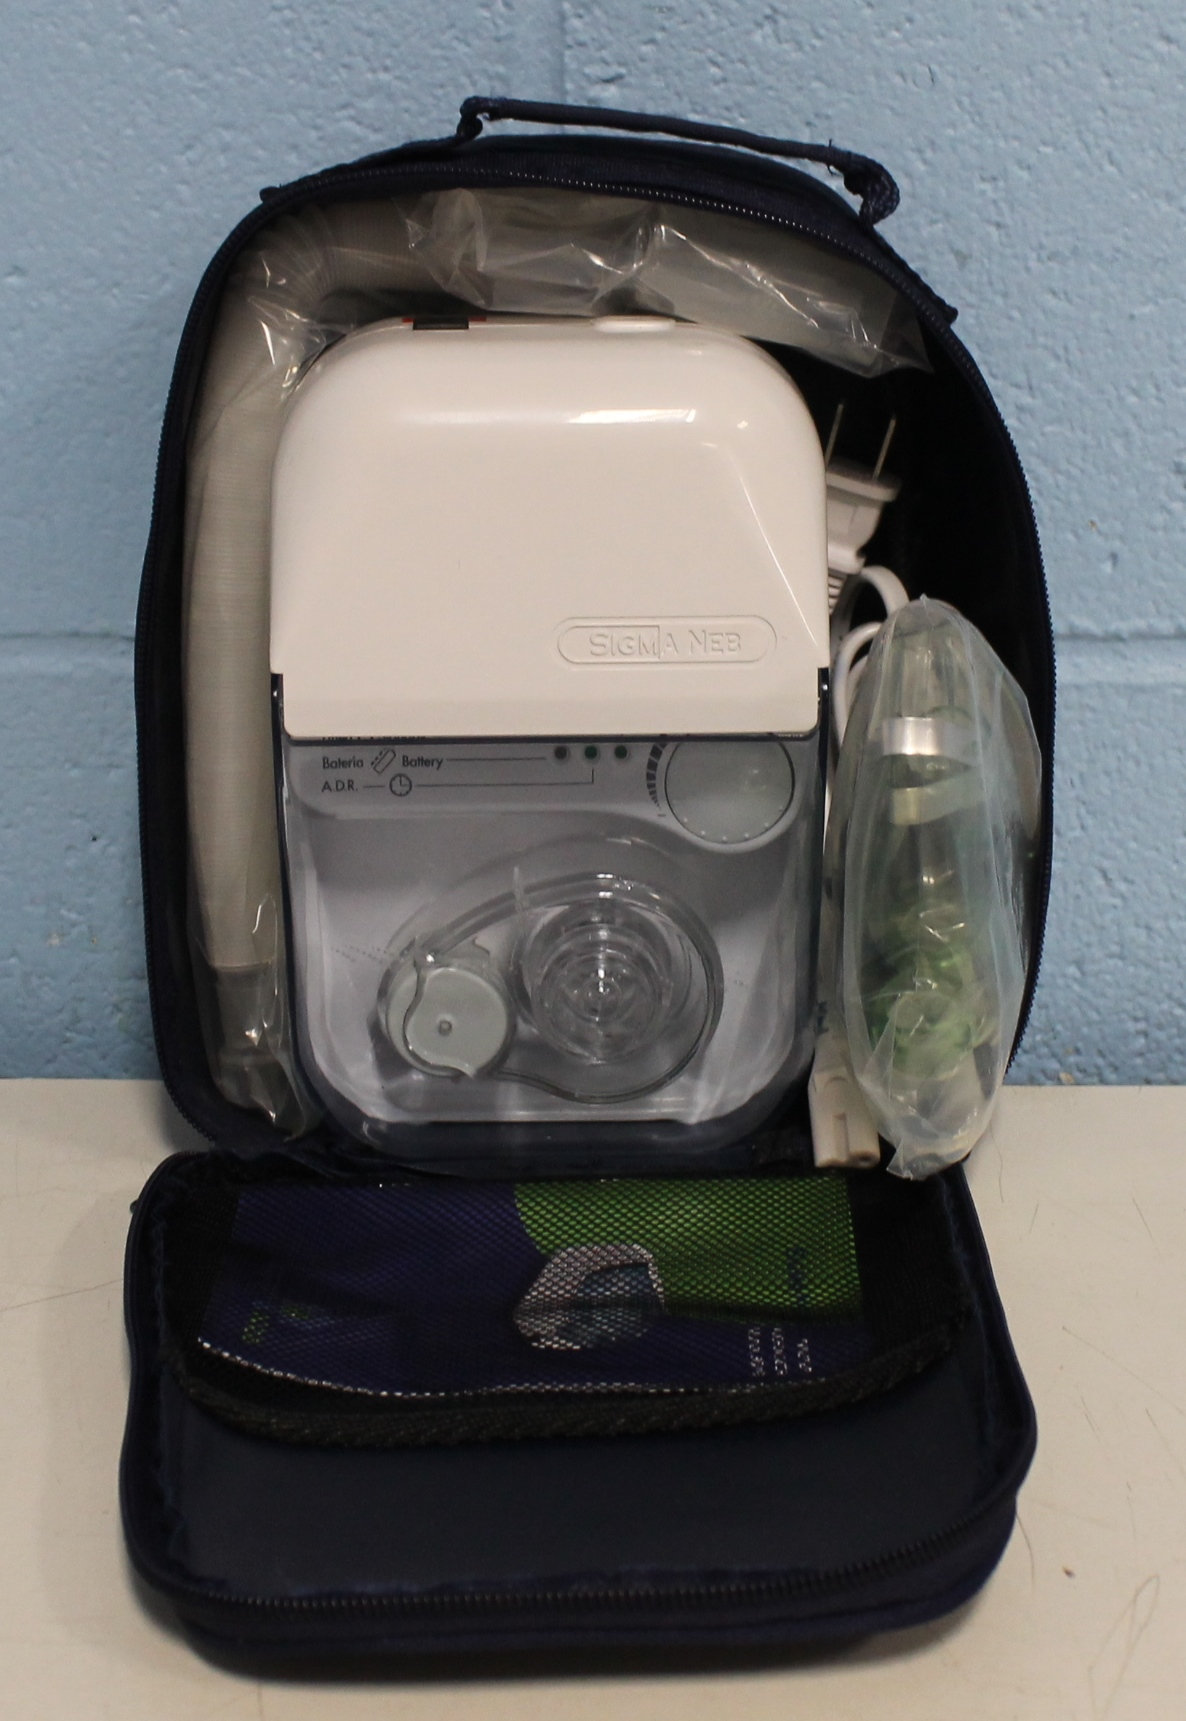 SigmaNeb Ultrasonic Nebulizer Twister Model 3019 Image